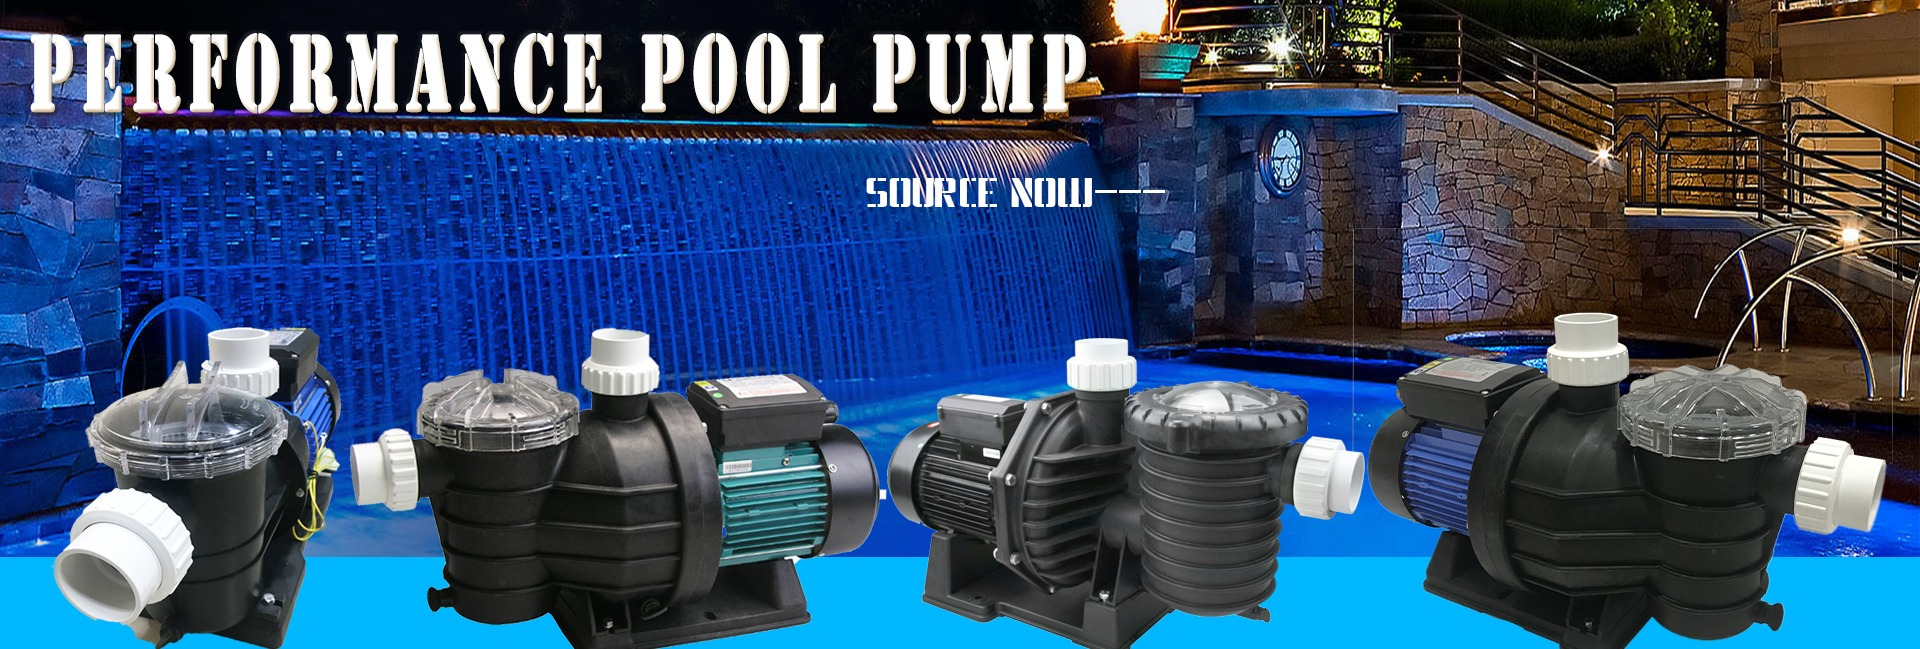 Poolpumpe Mit Sandfilter Sichuan Great Technology Co Ltd Swimming Pool Series